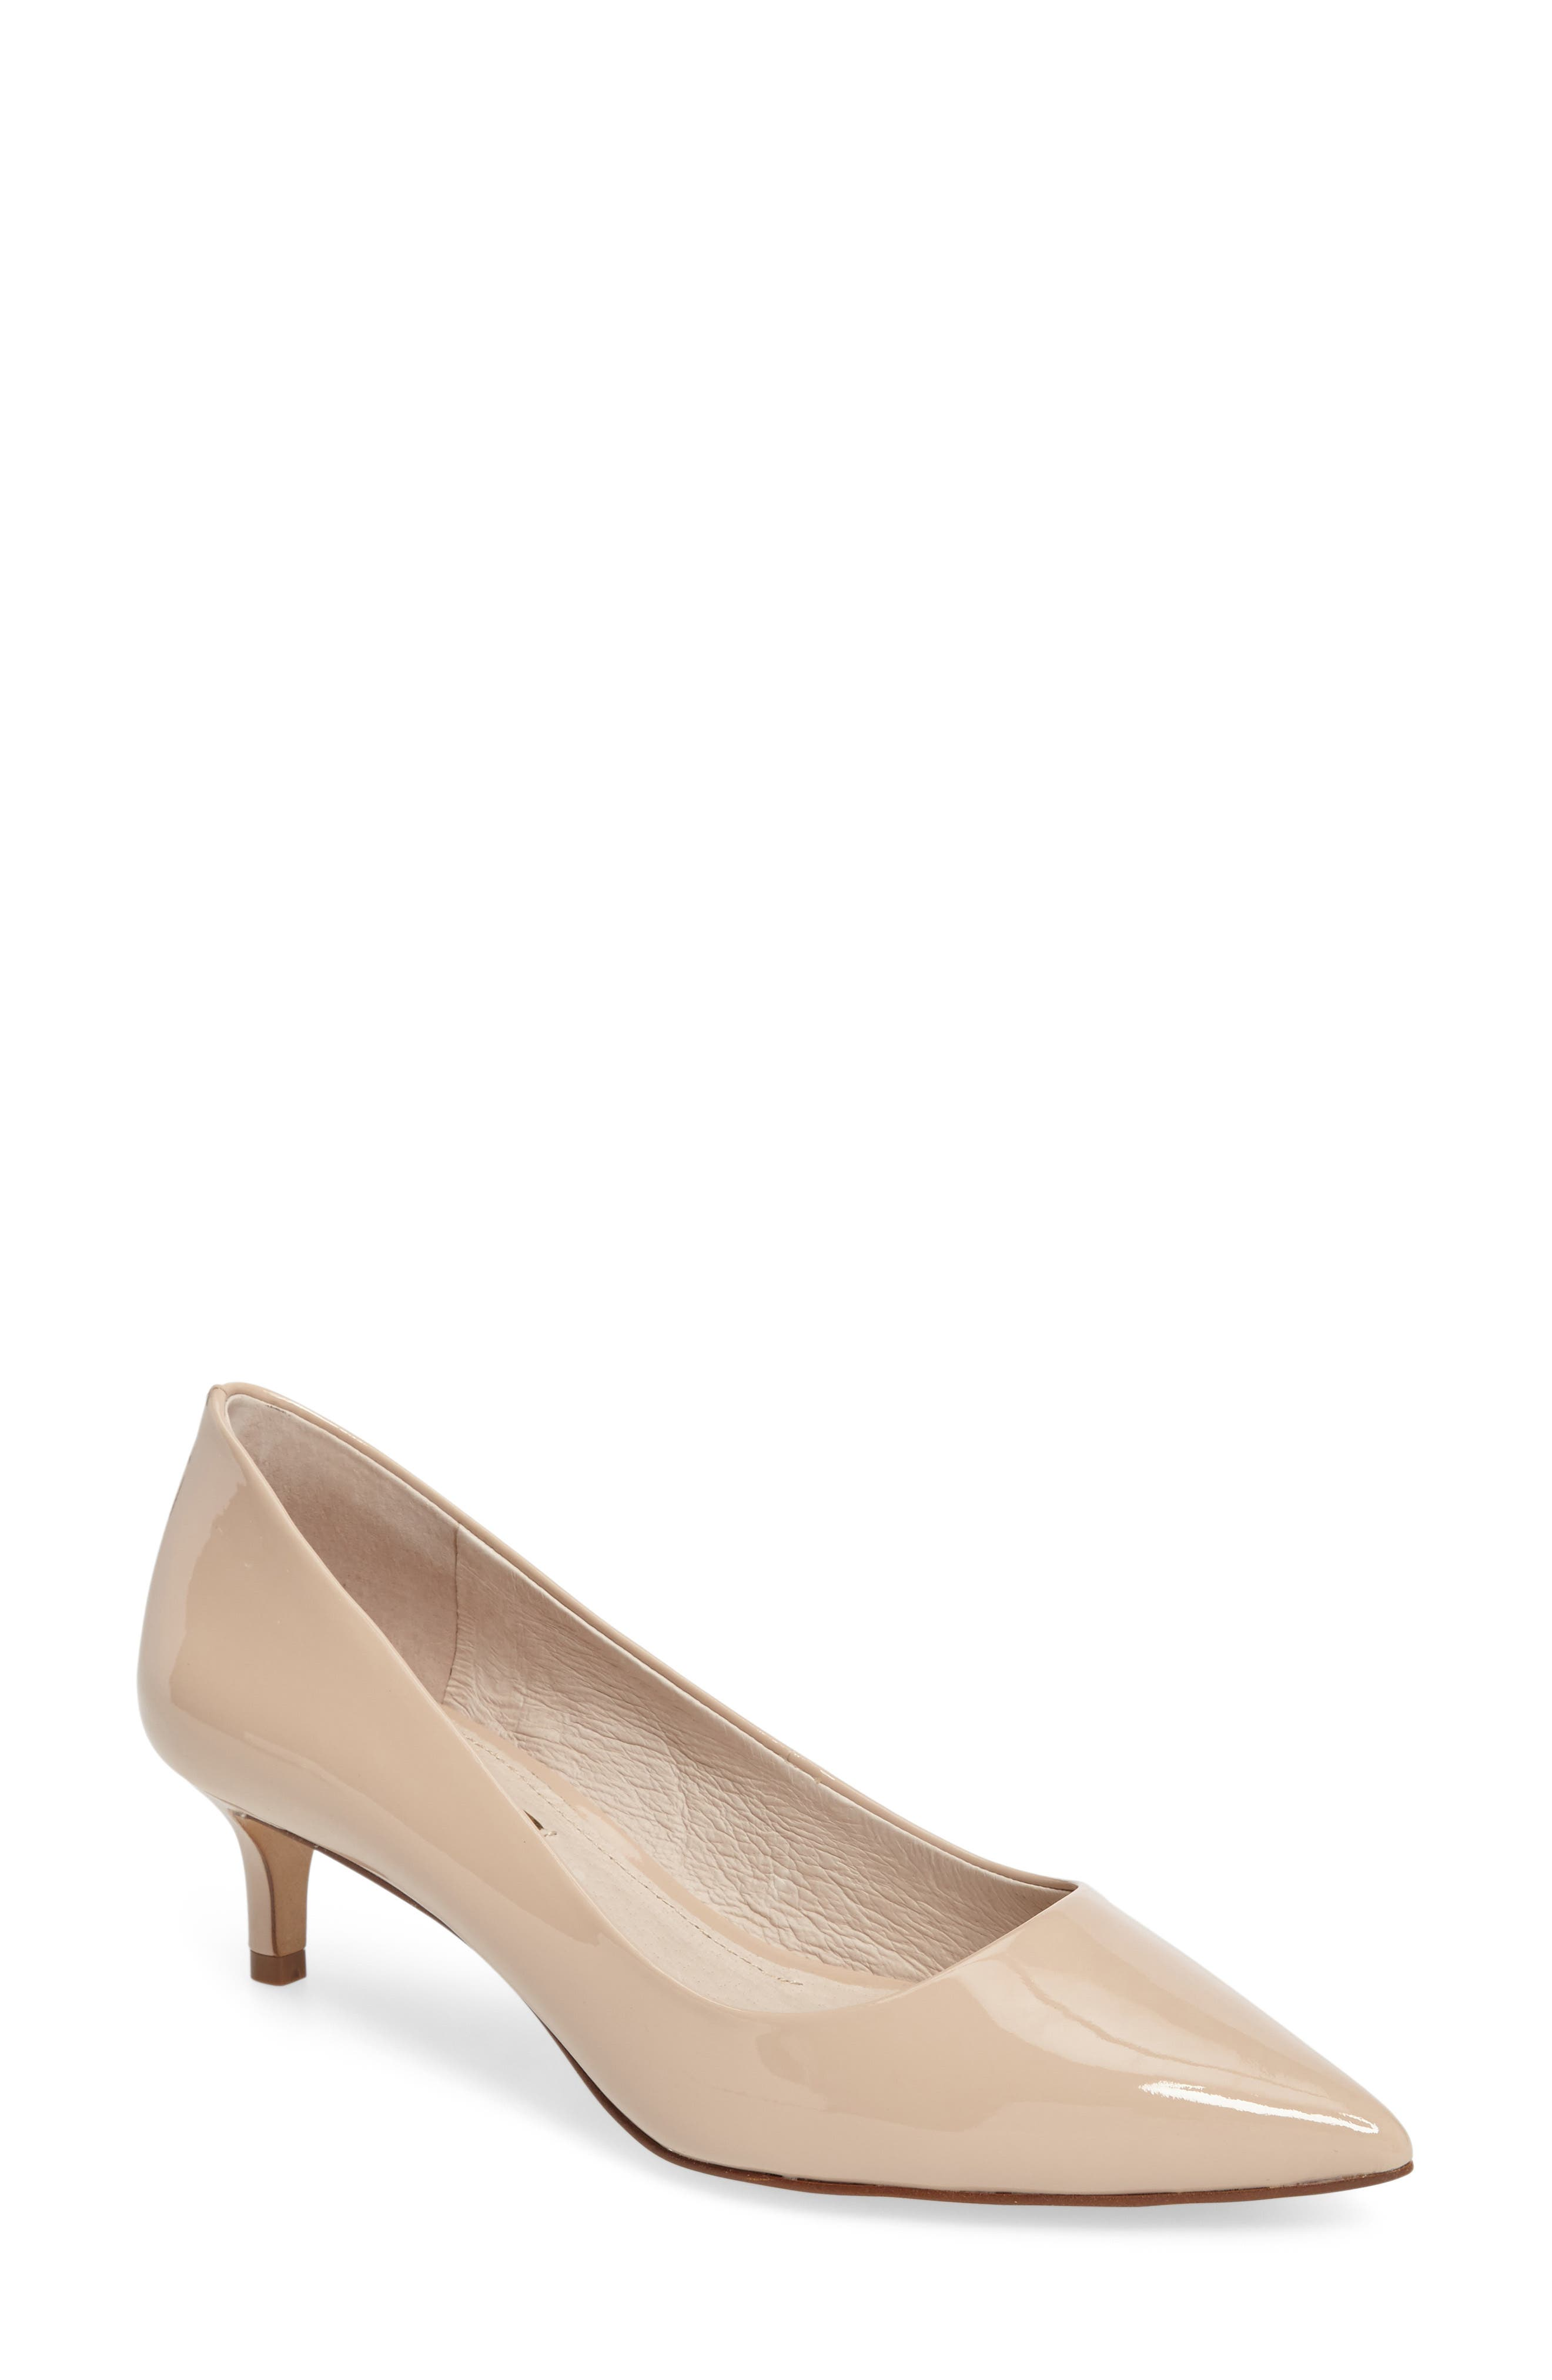 Women's Beige Kitten Heel Pumps | Nordstrom